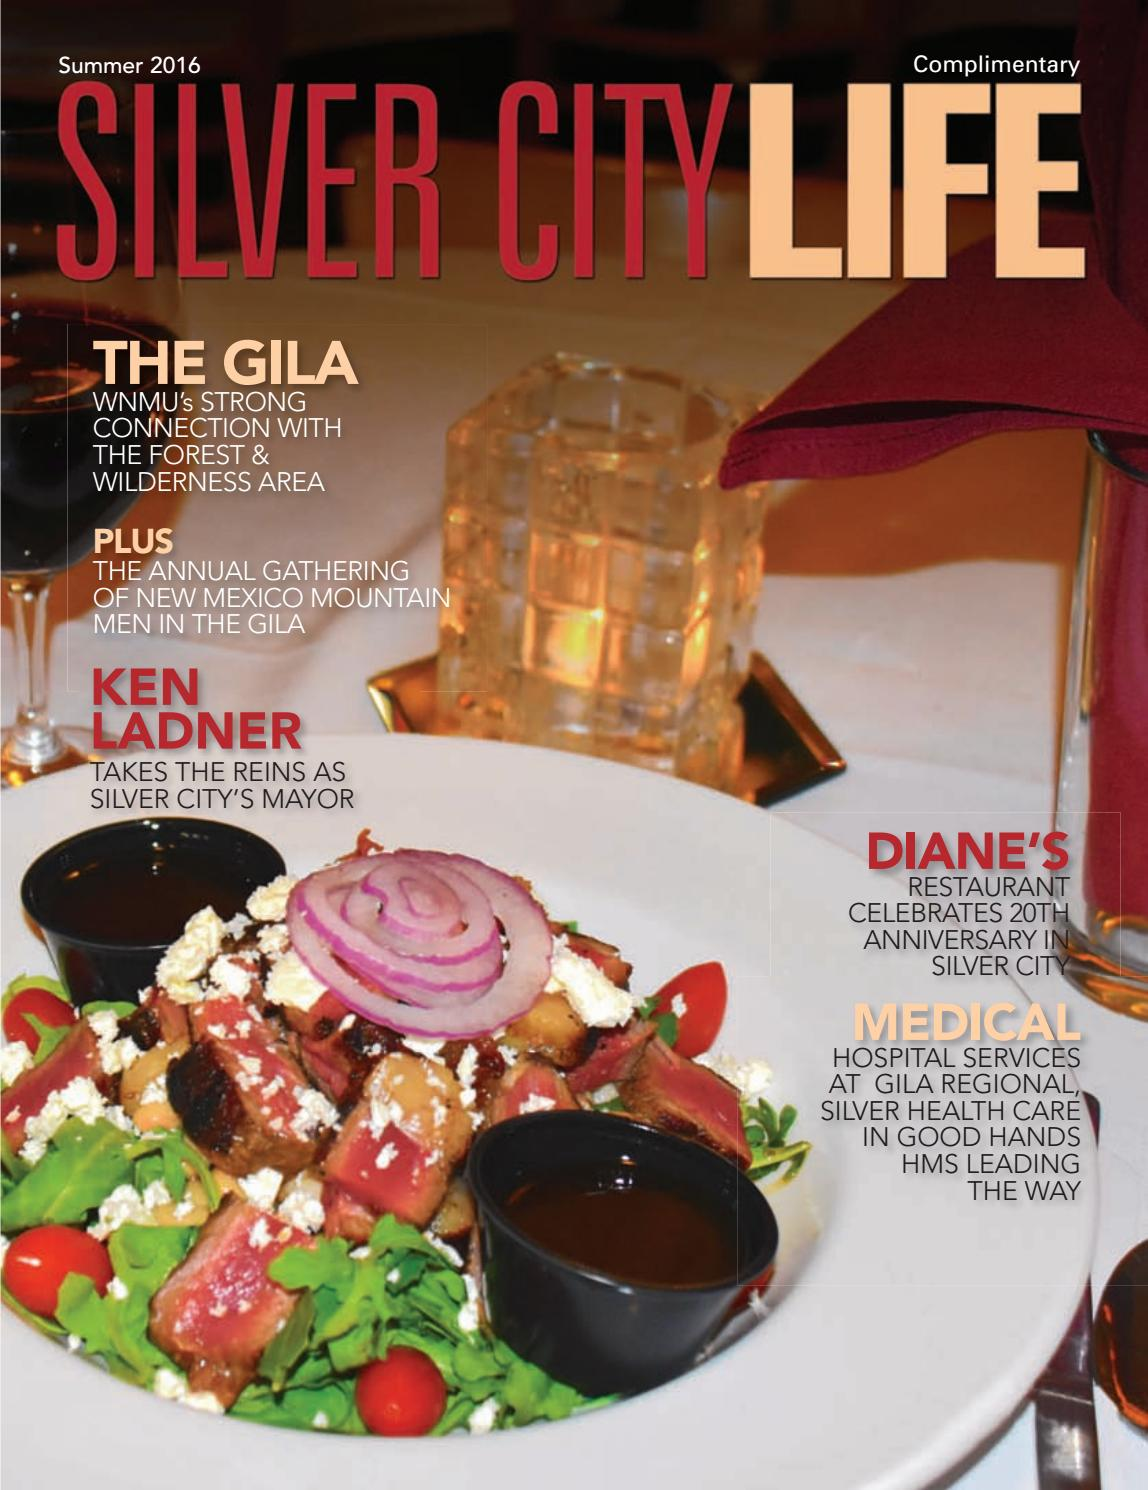 Silver City Life Summer 2016 By Zia Publishing